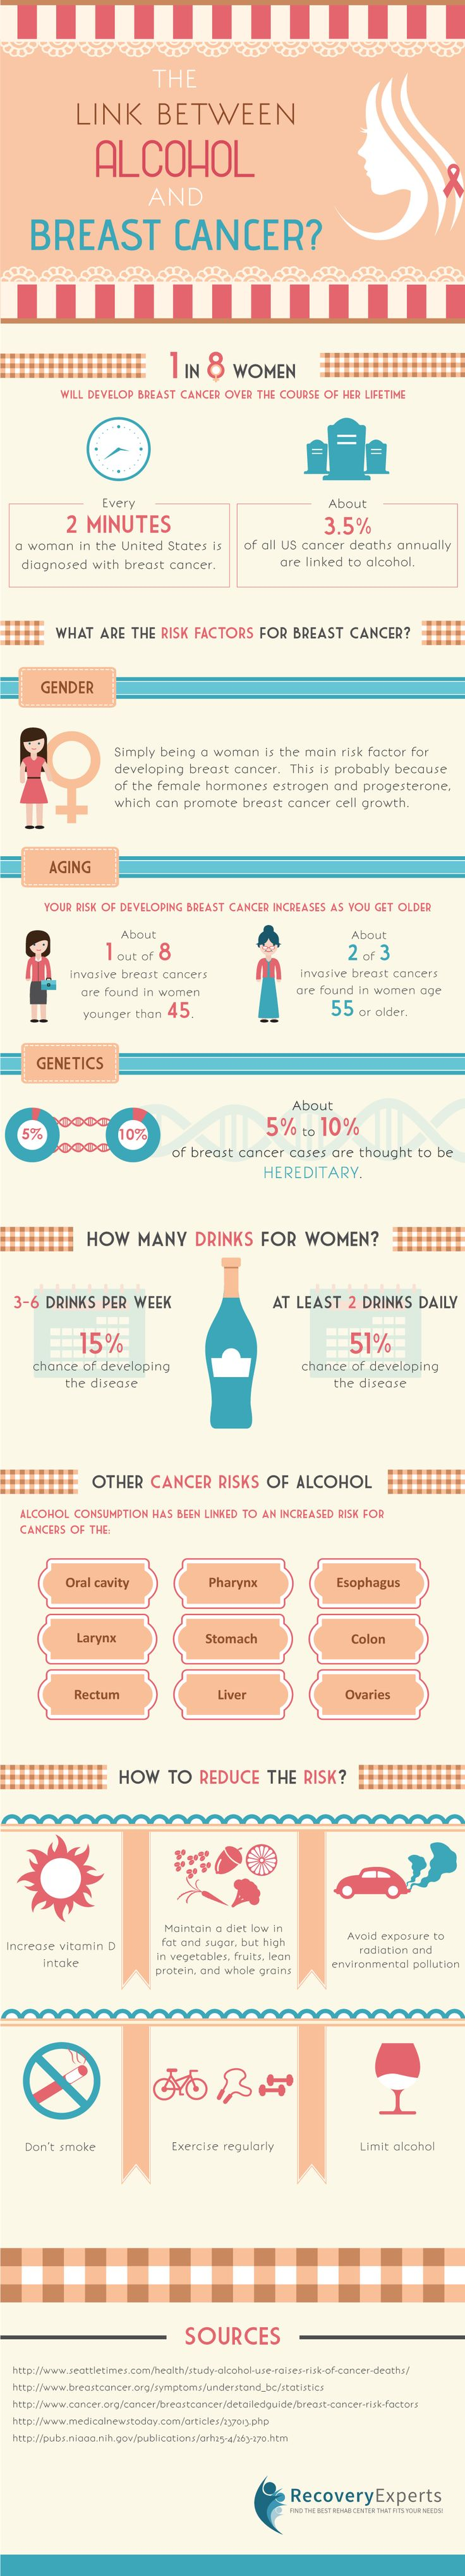 Just one alcoholic drink a day increases breast cancer ...